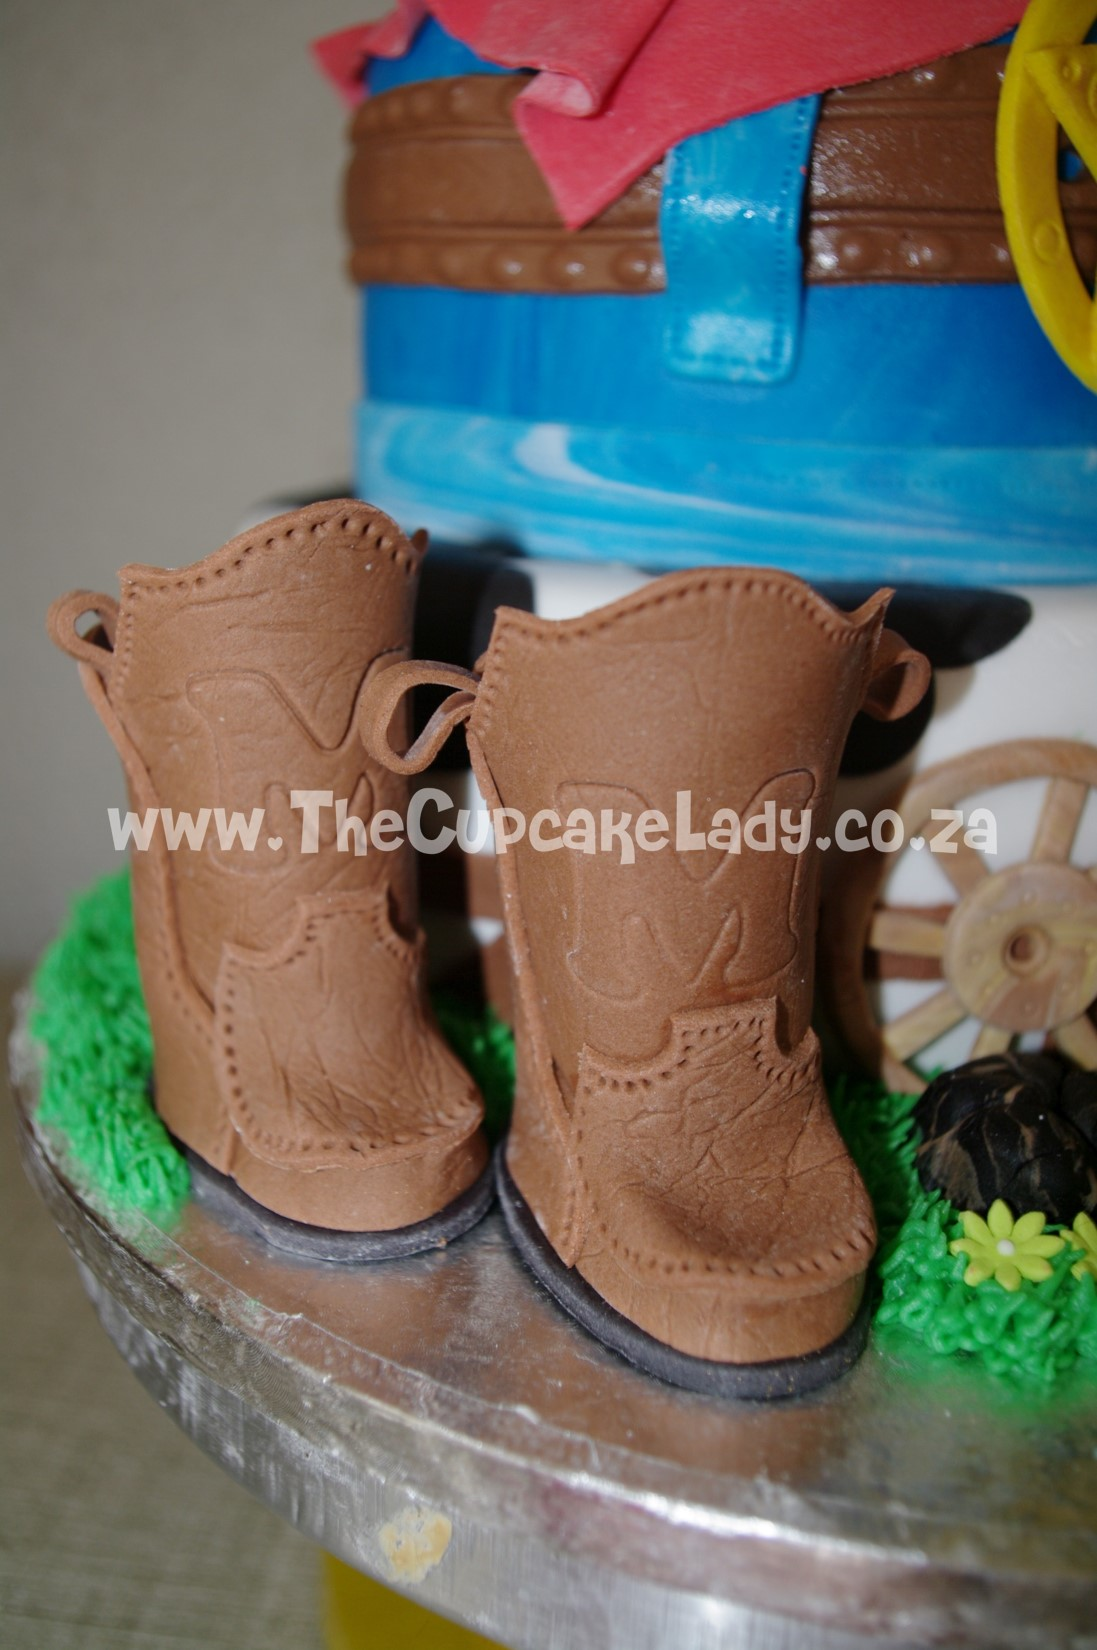 cowboy theme, western theme, two tier cake, birthday cake, custom made sugar paste fondant decorations - boots